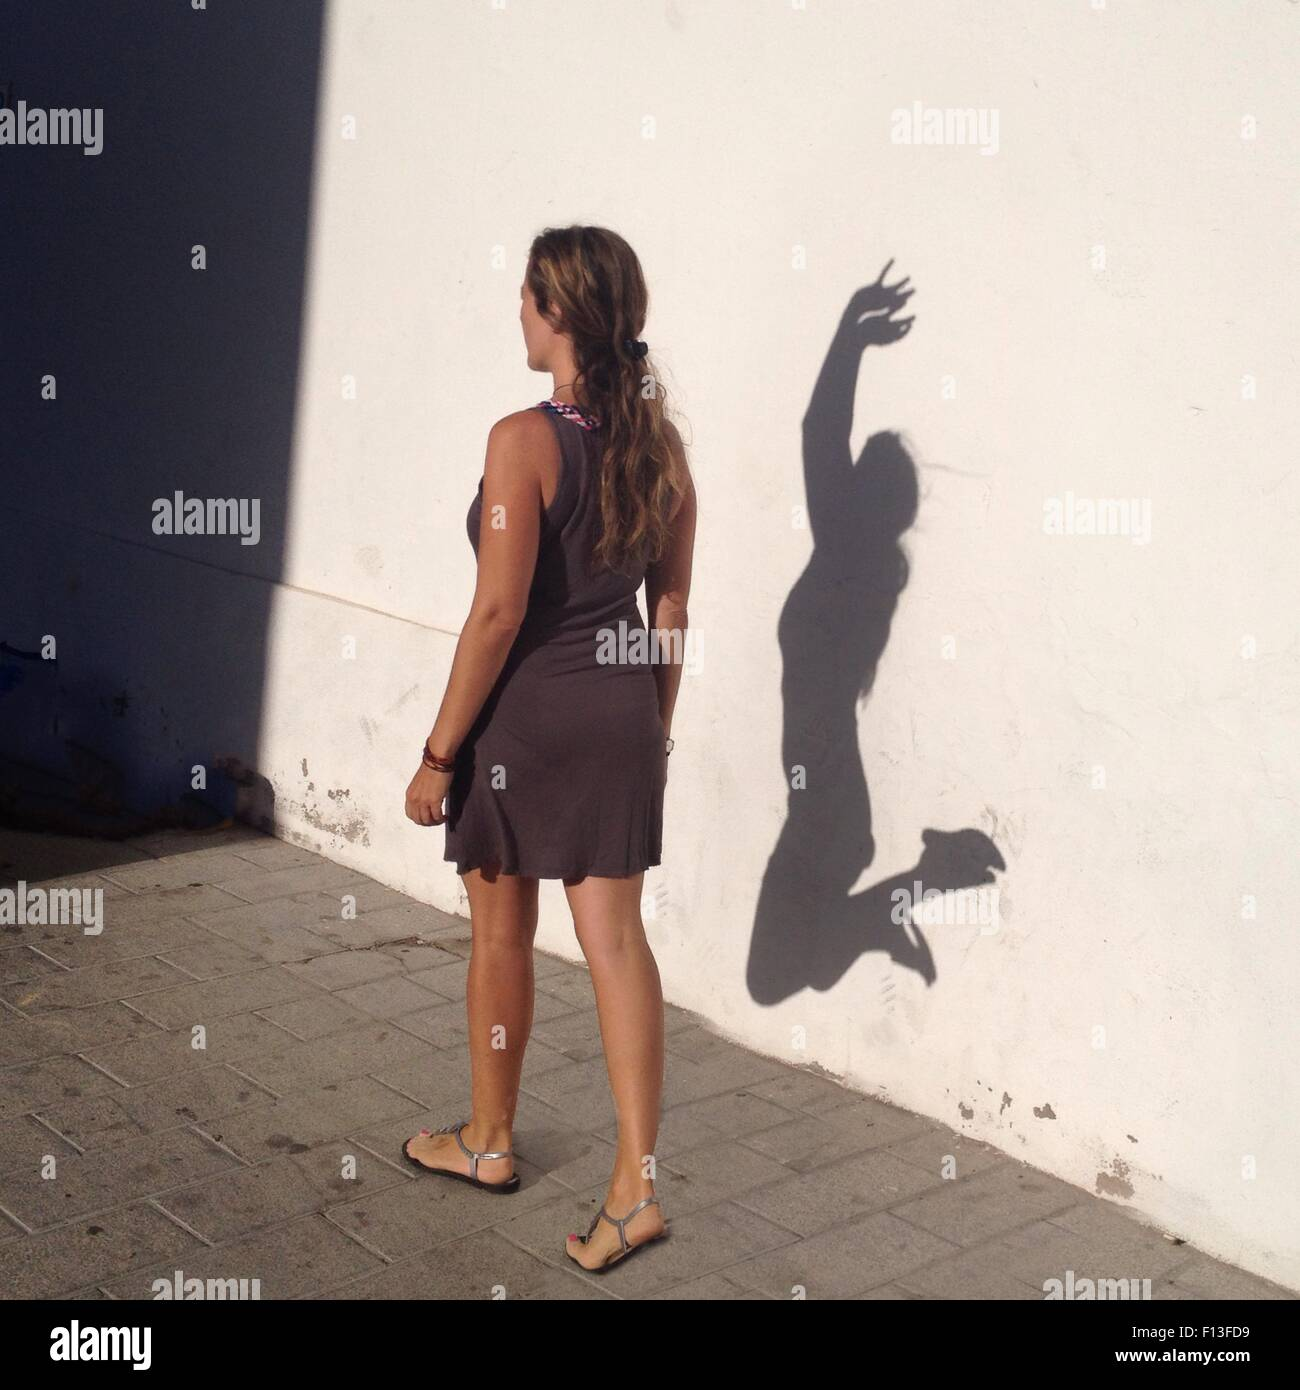 Woman walking with an alter ego shadow jumping for joy - Stock Image